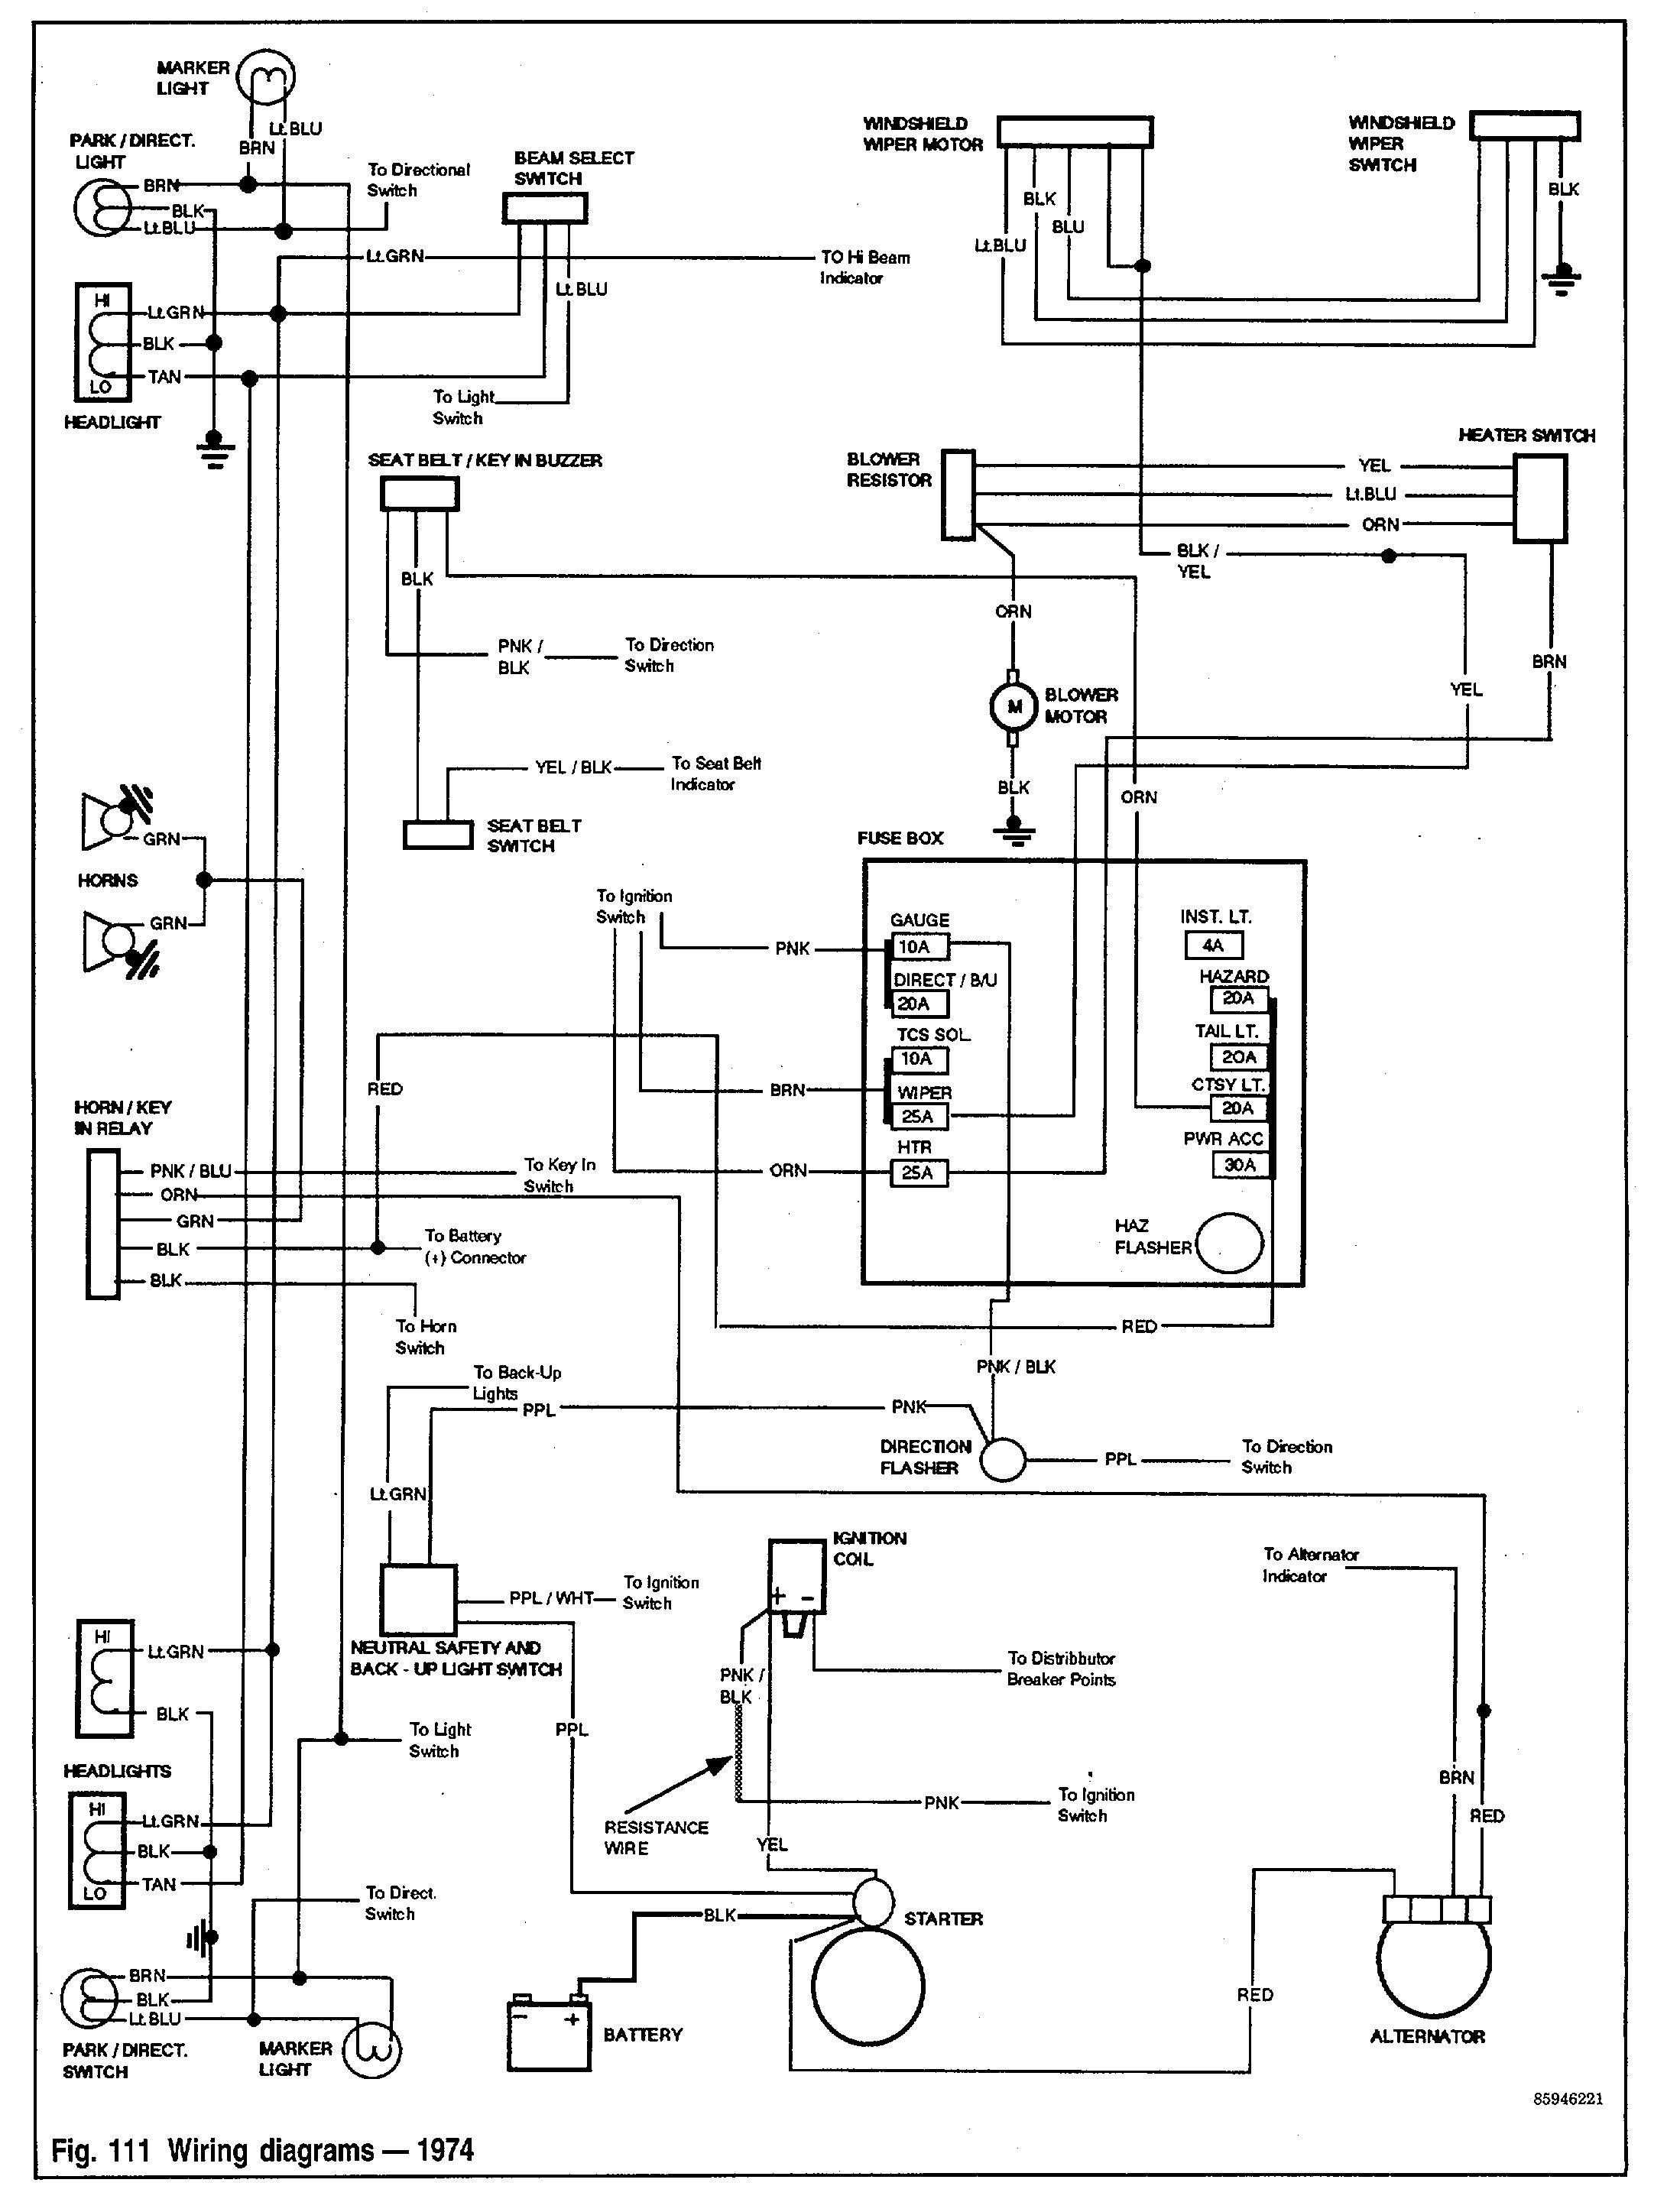 Beautiful Wiring Diagram Kancil 660 Diagrams